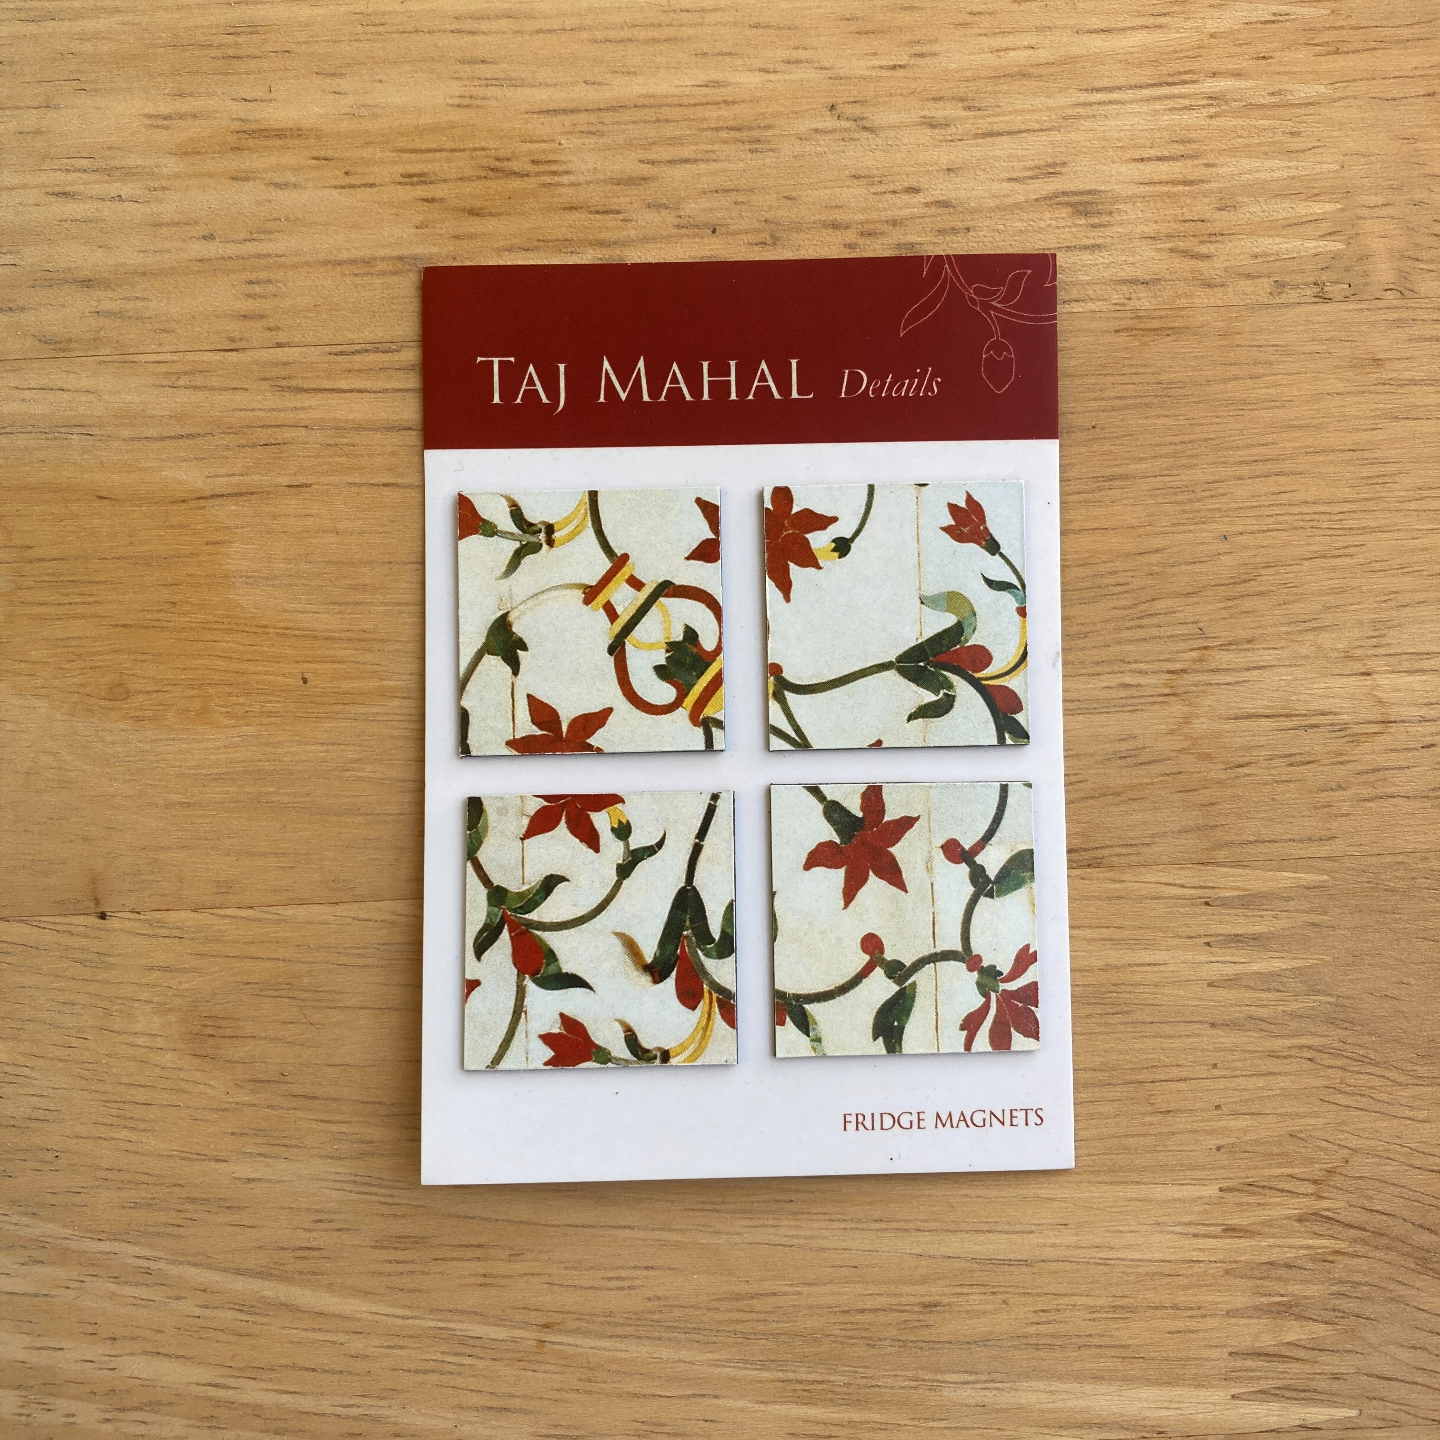 FRIDGE MAGNETS Set of 4 - Taj Mahal, inlay details